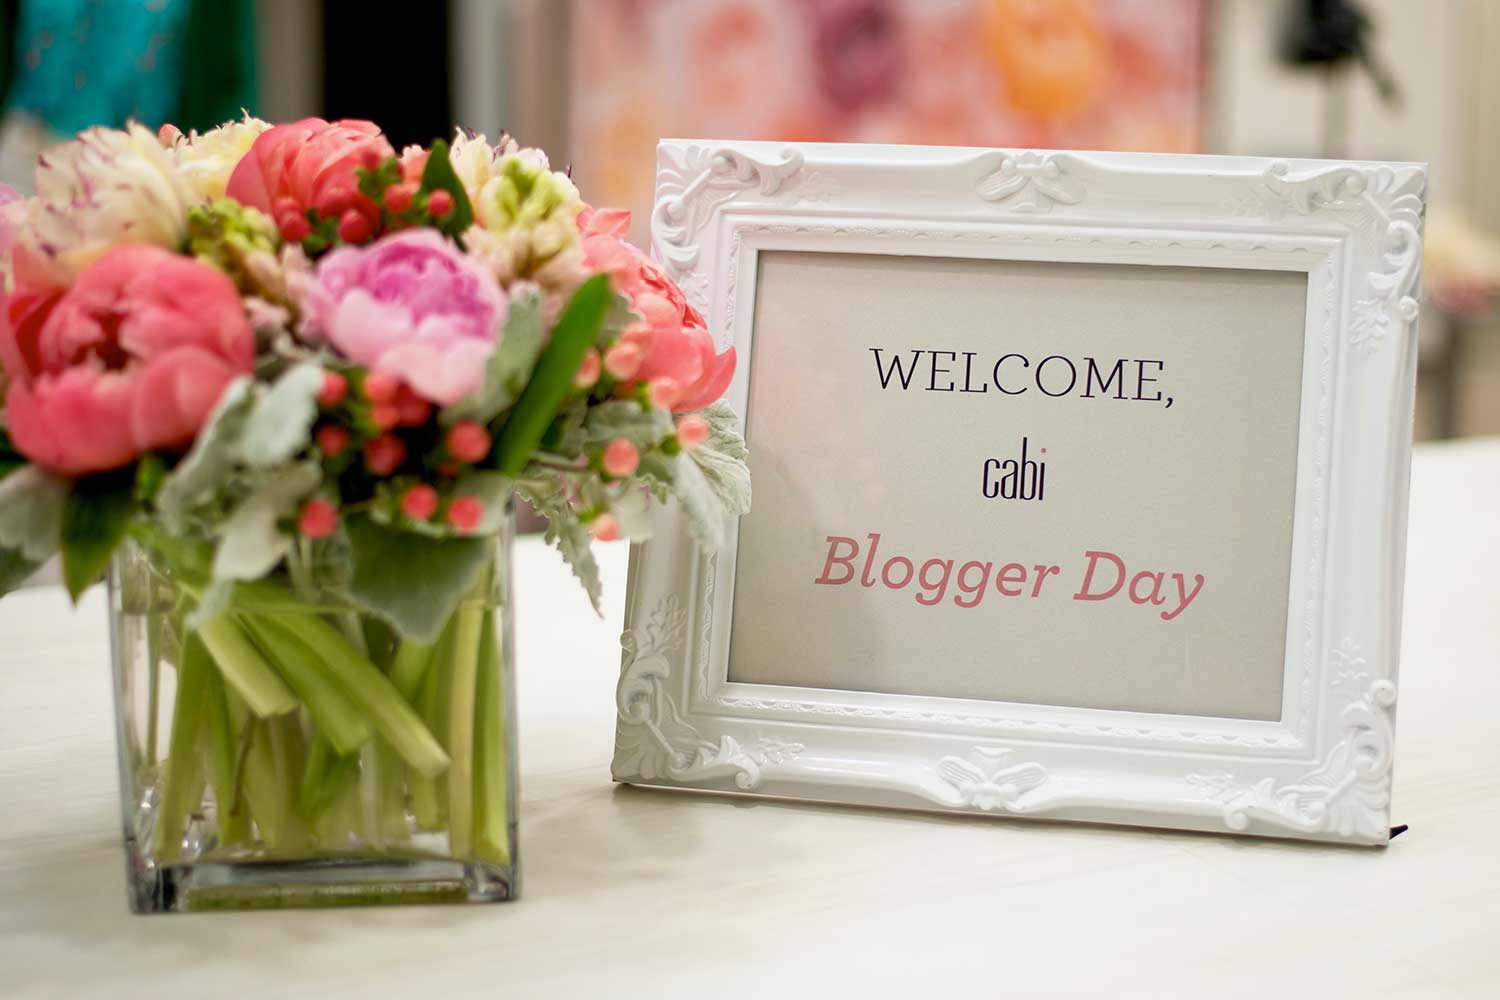 Jenna-Pilant-Style-Blogger-Lucky-Little-Mustardseed-Cabi-Blogger-Day-2017-Cabi-Fall-Preview-2017-1